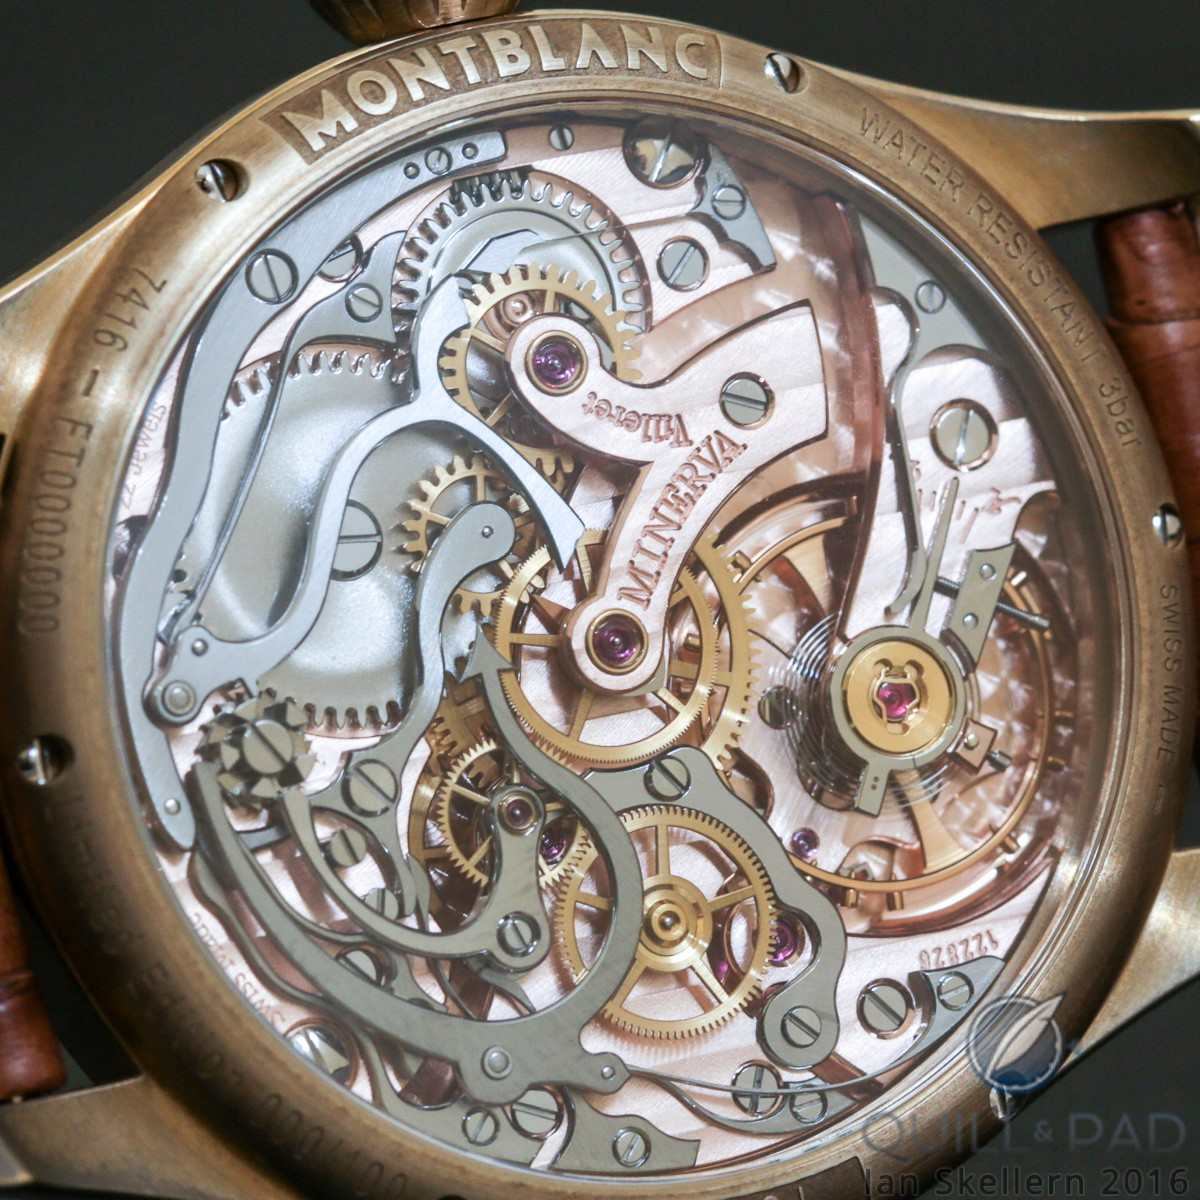 Beautiful movement of the Montblanc 1858 Chronograph Tachymeter